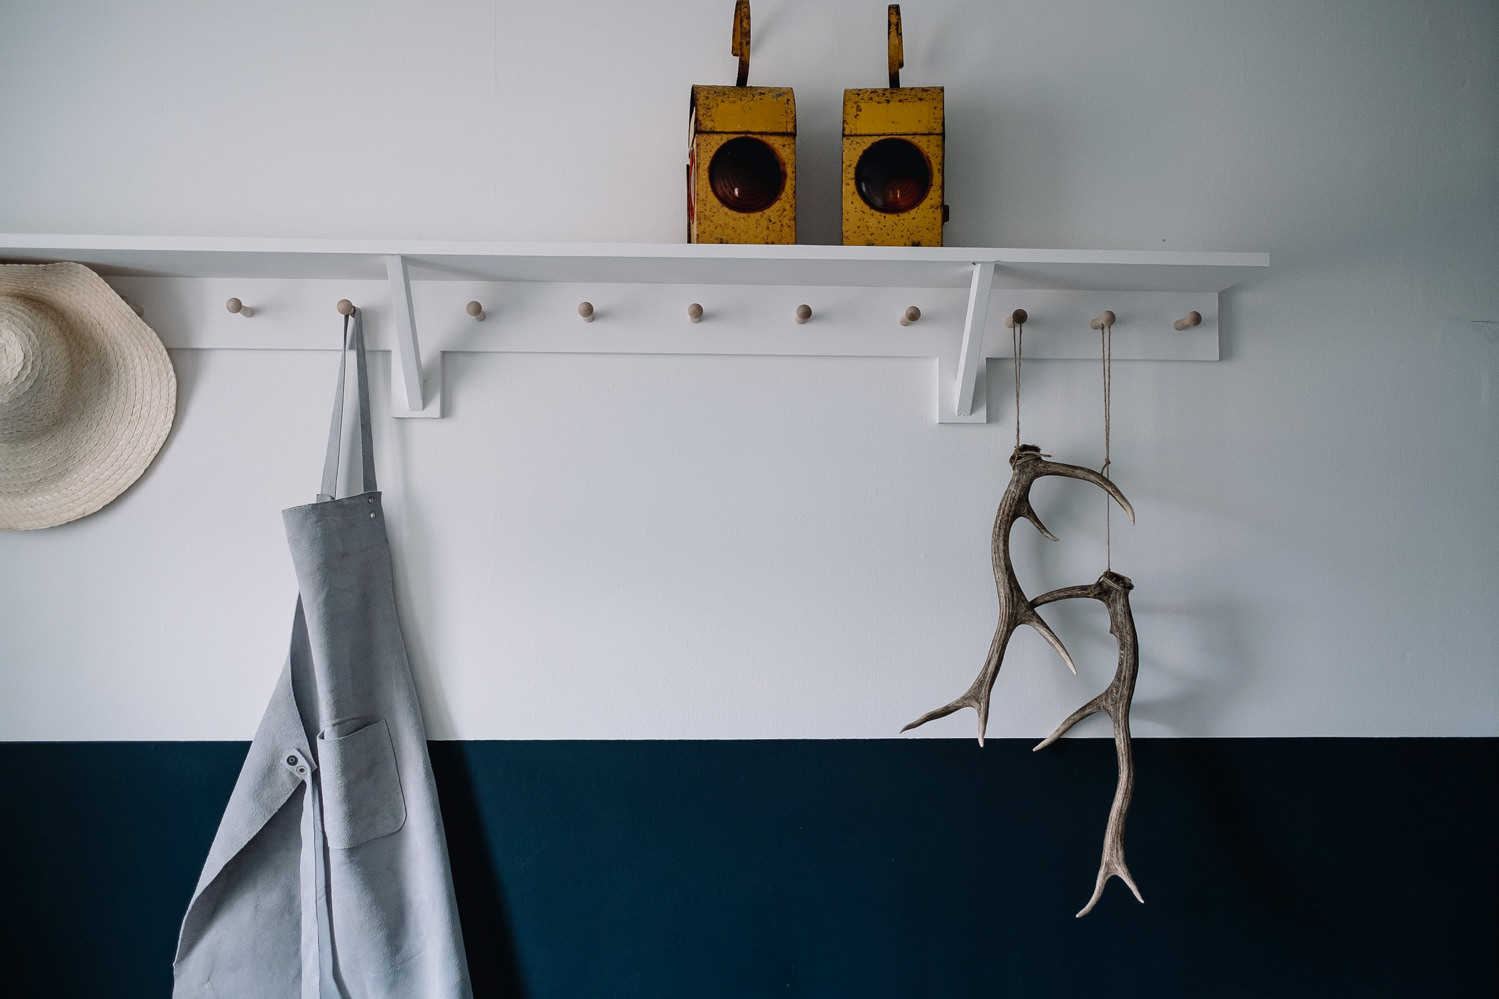 Stag antlers hang alongside an apron on the coat hook in the boot room.